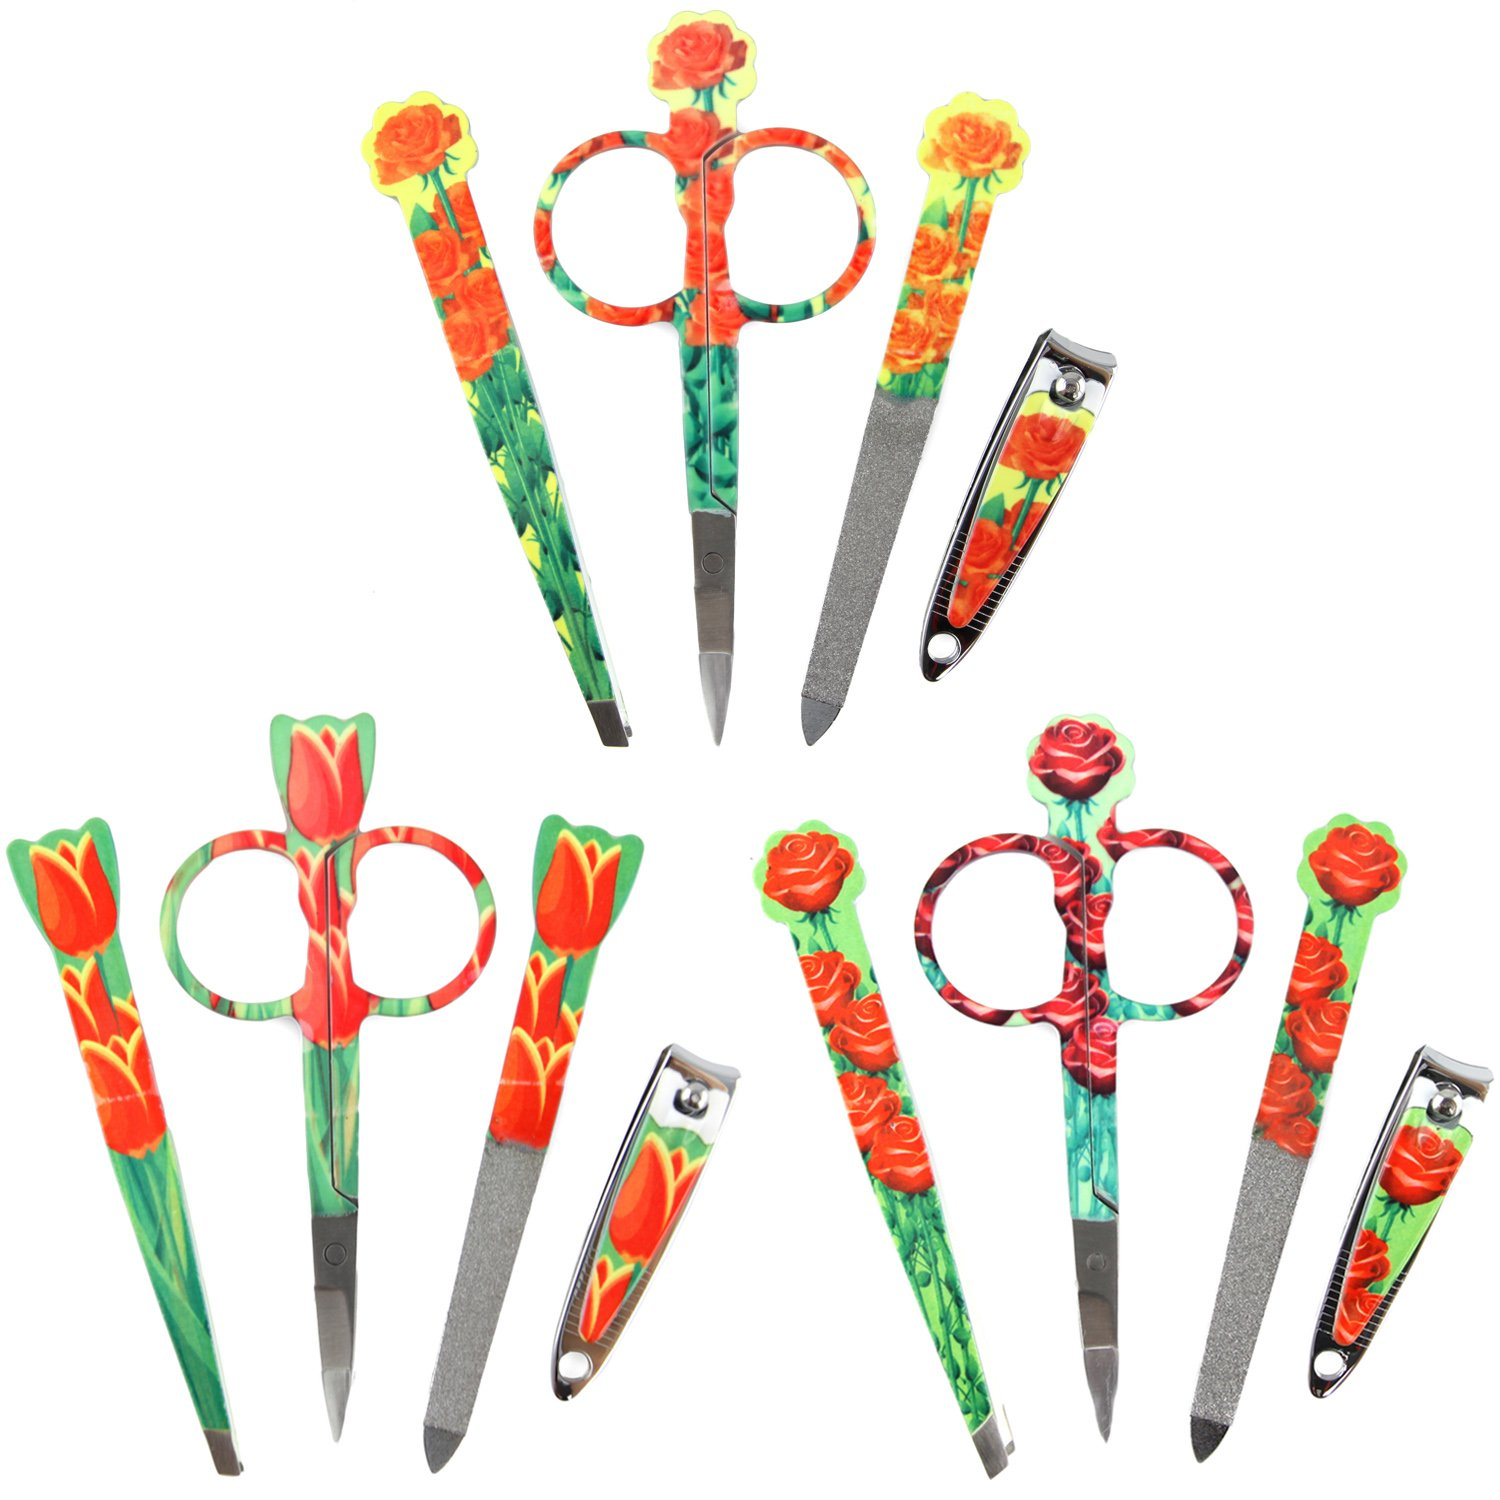 Nail Clipper Set - Best for Nail Grooming Manicure at Home or Travel Kit - 3 LOT, 4pc - Floral